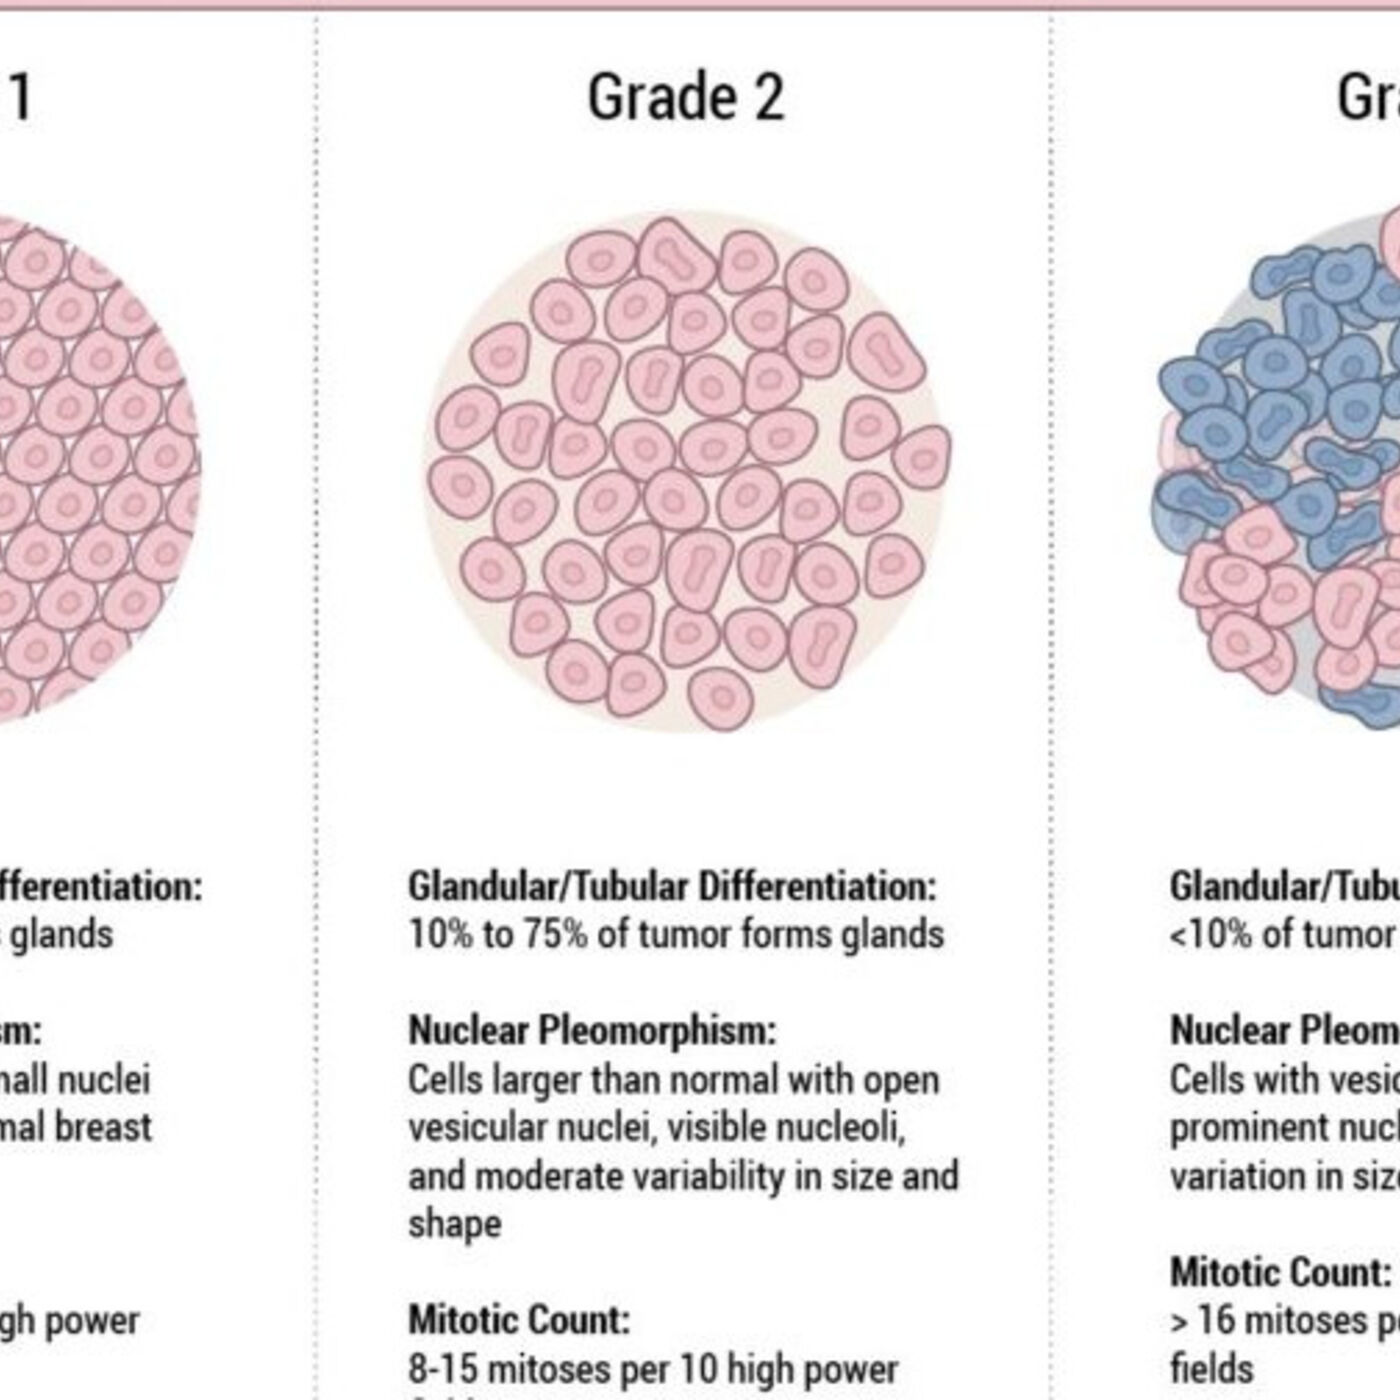 Understanding Breast Cancer Staging and Tumor Classification